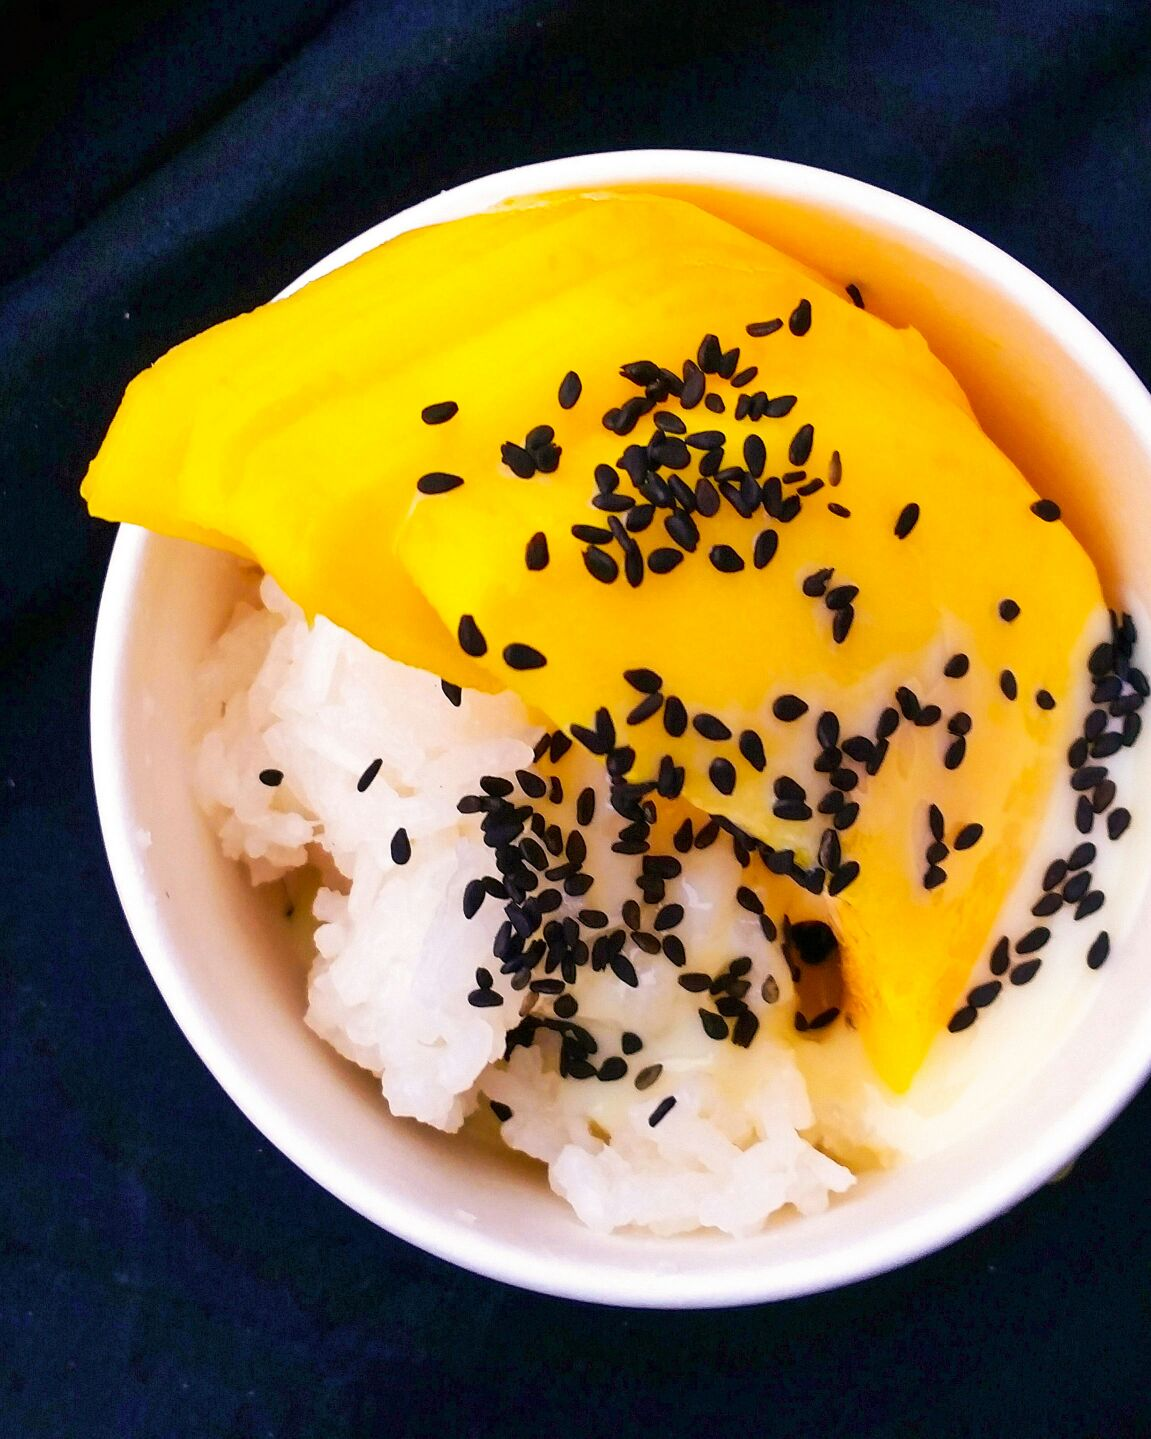 Mango sticky with condensed milk & salted black sesame seeds #1 (photo by Kaleem Hyder)